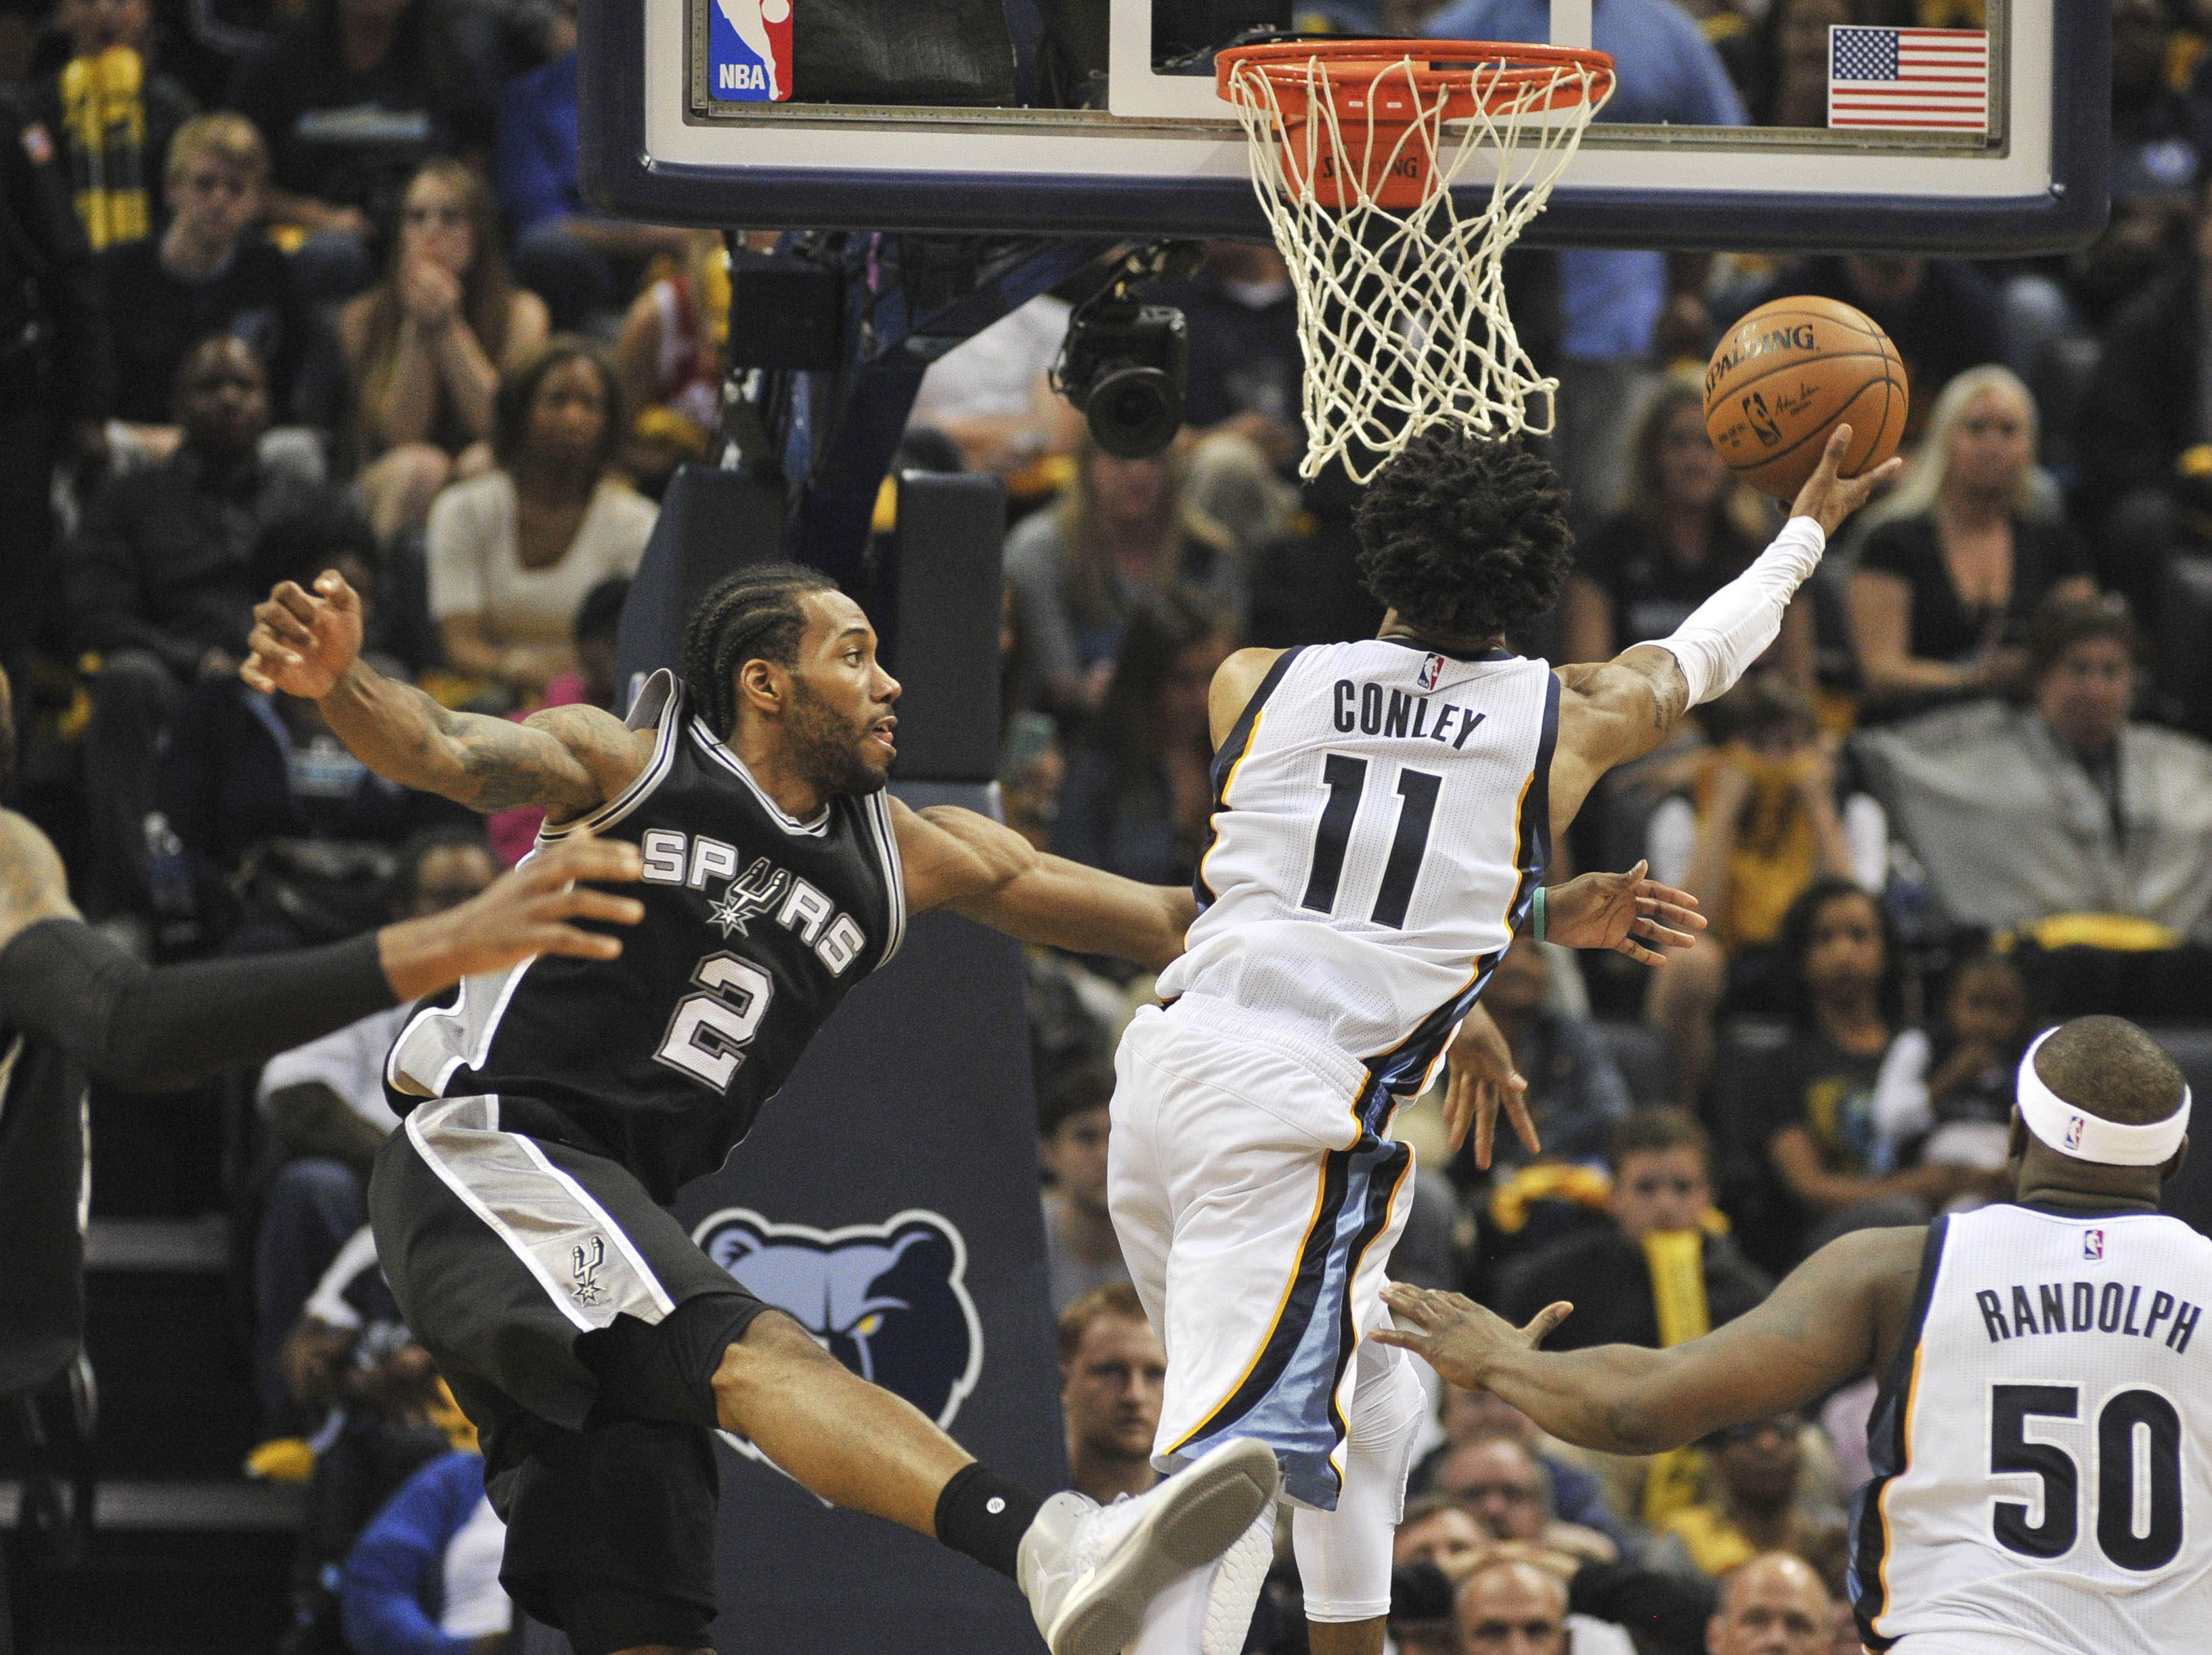 Spurs advance: San Antonio beats Grizzlies 103-96 in Game 6